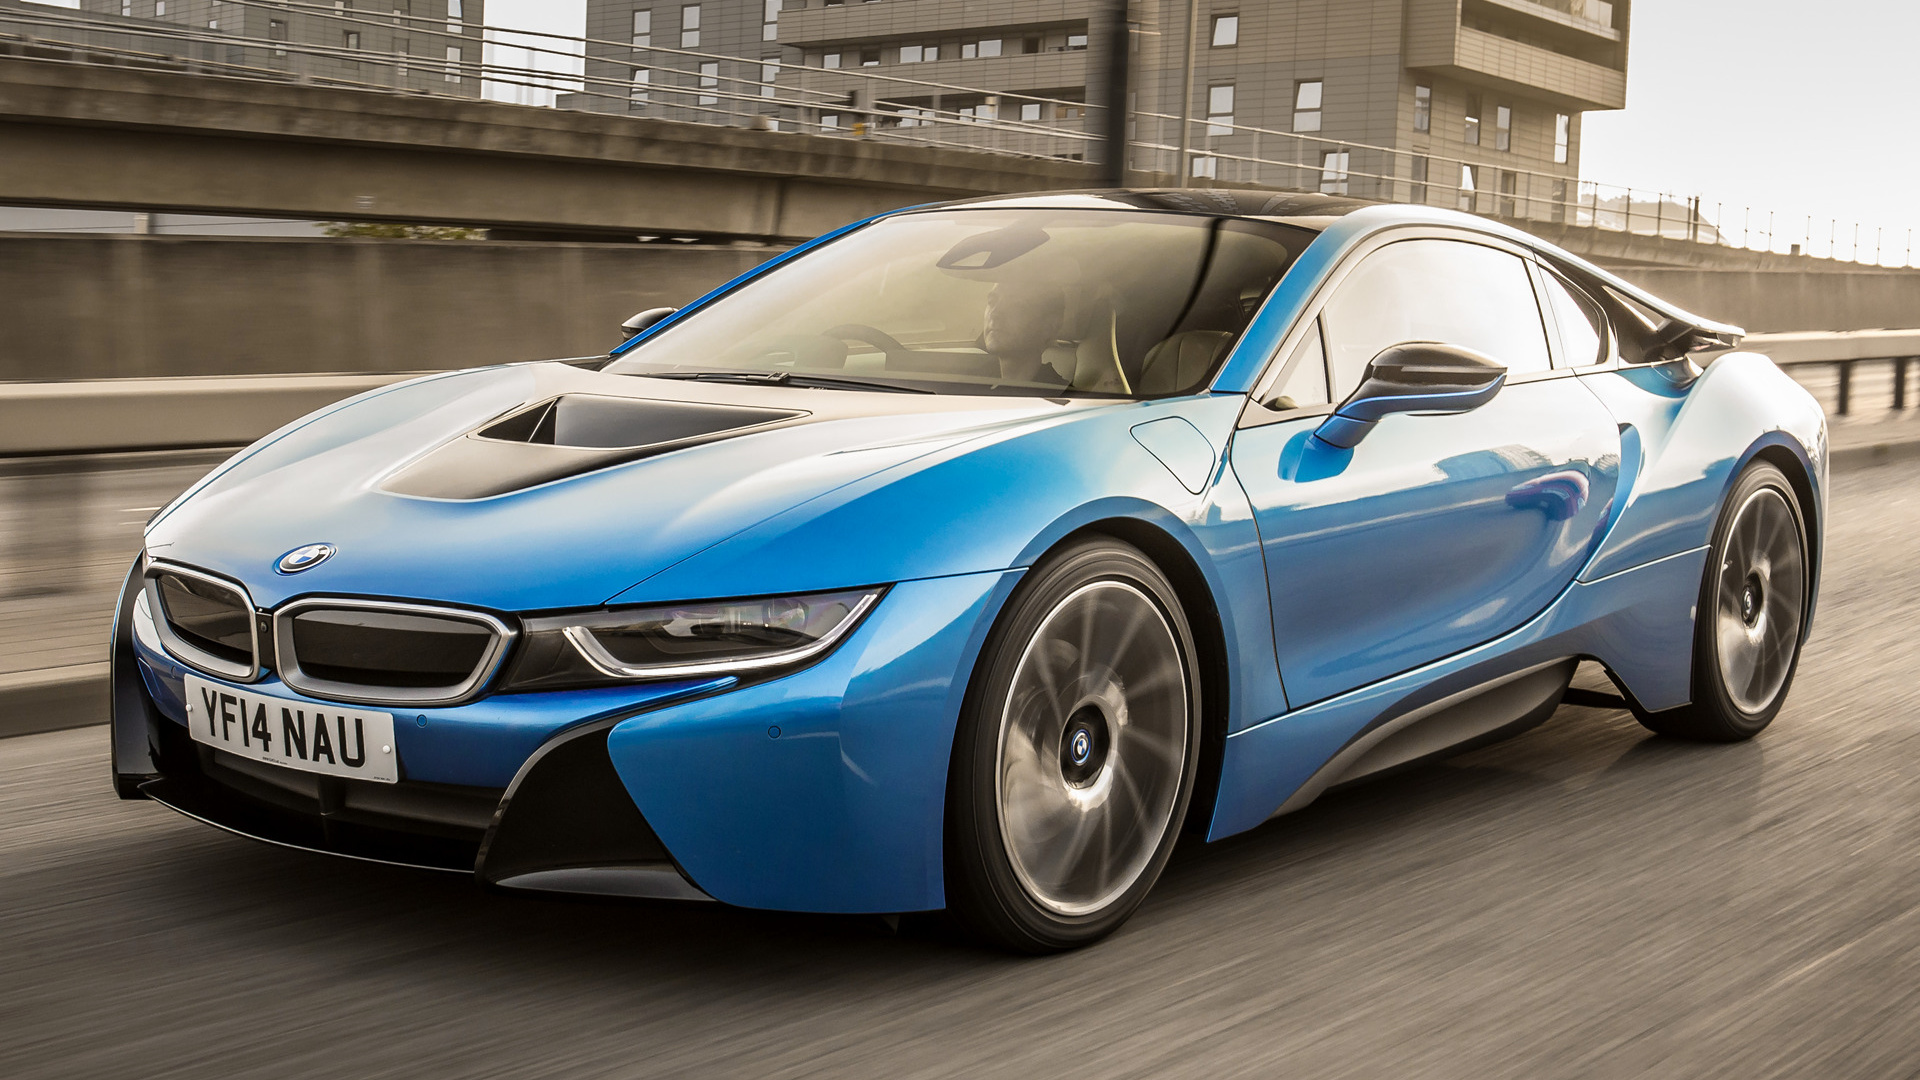 Bmw I8 Images Hd 2015 Ac Schnitzer Bmw I8 2 Wallpaper Hd Car